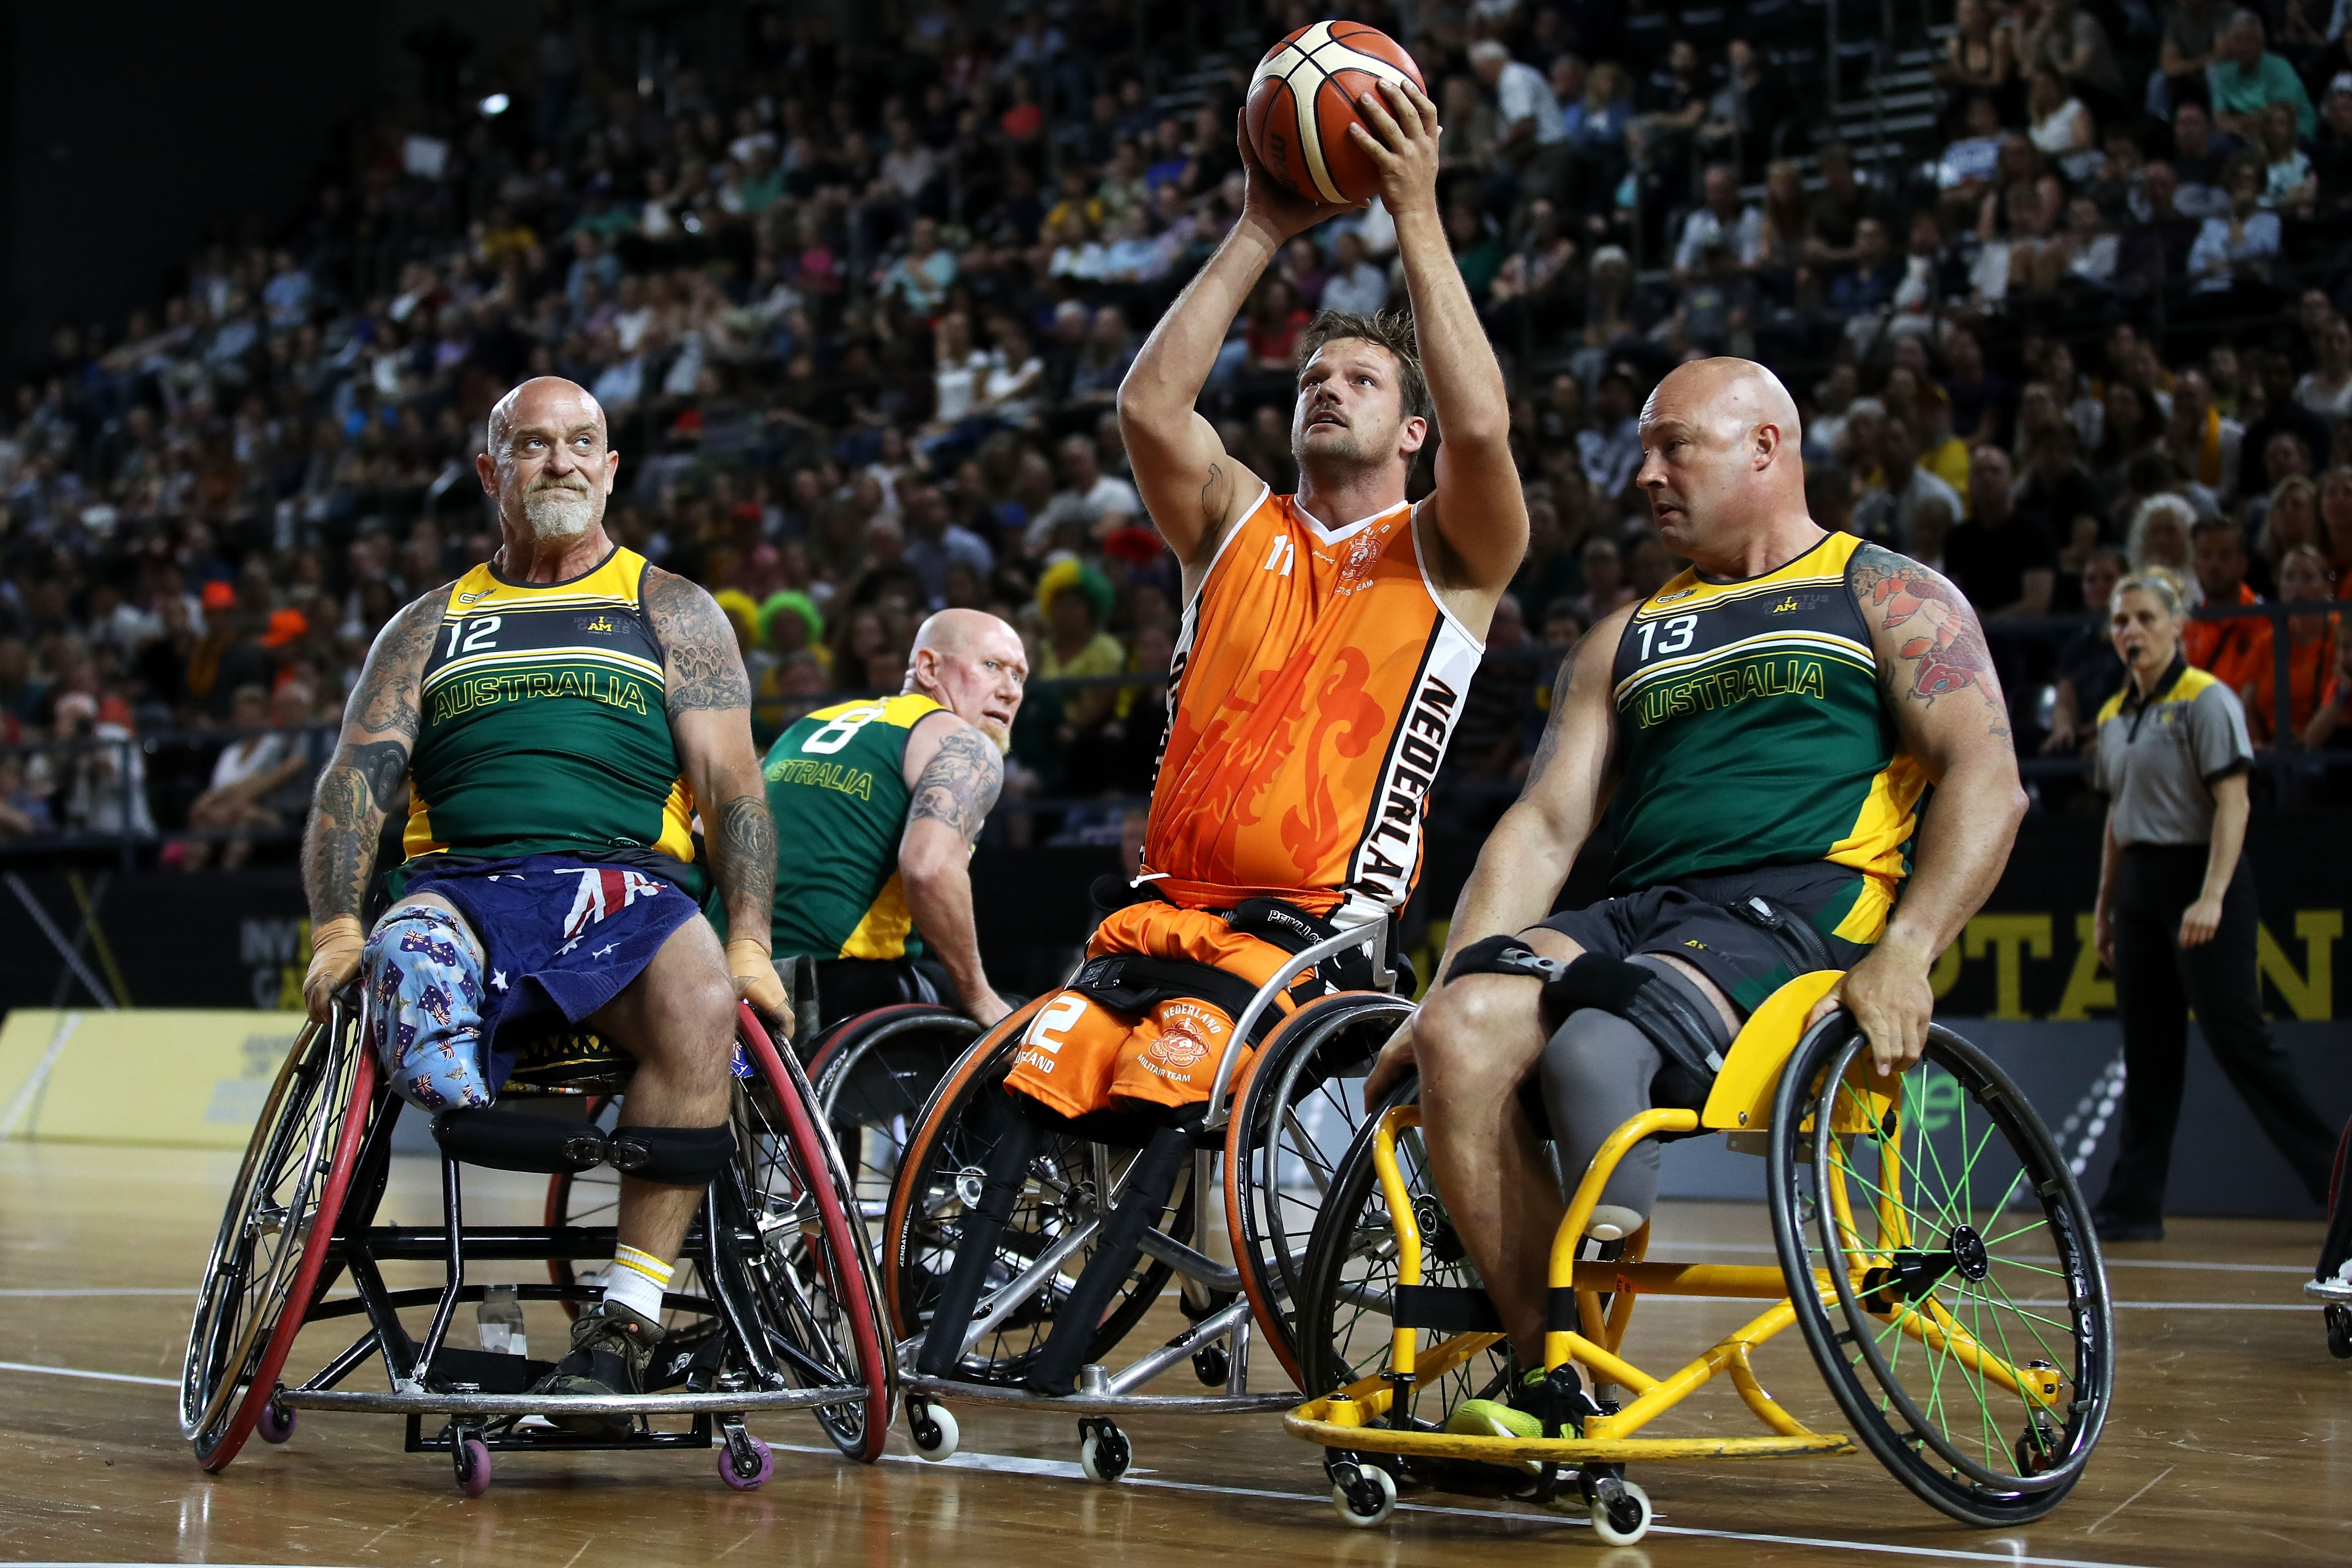 Invictus Games (Foto: Getty Images via Invictus Games Foundation)